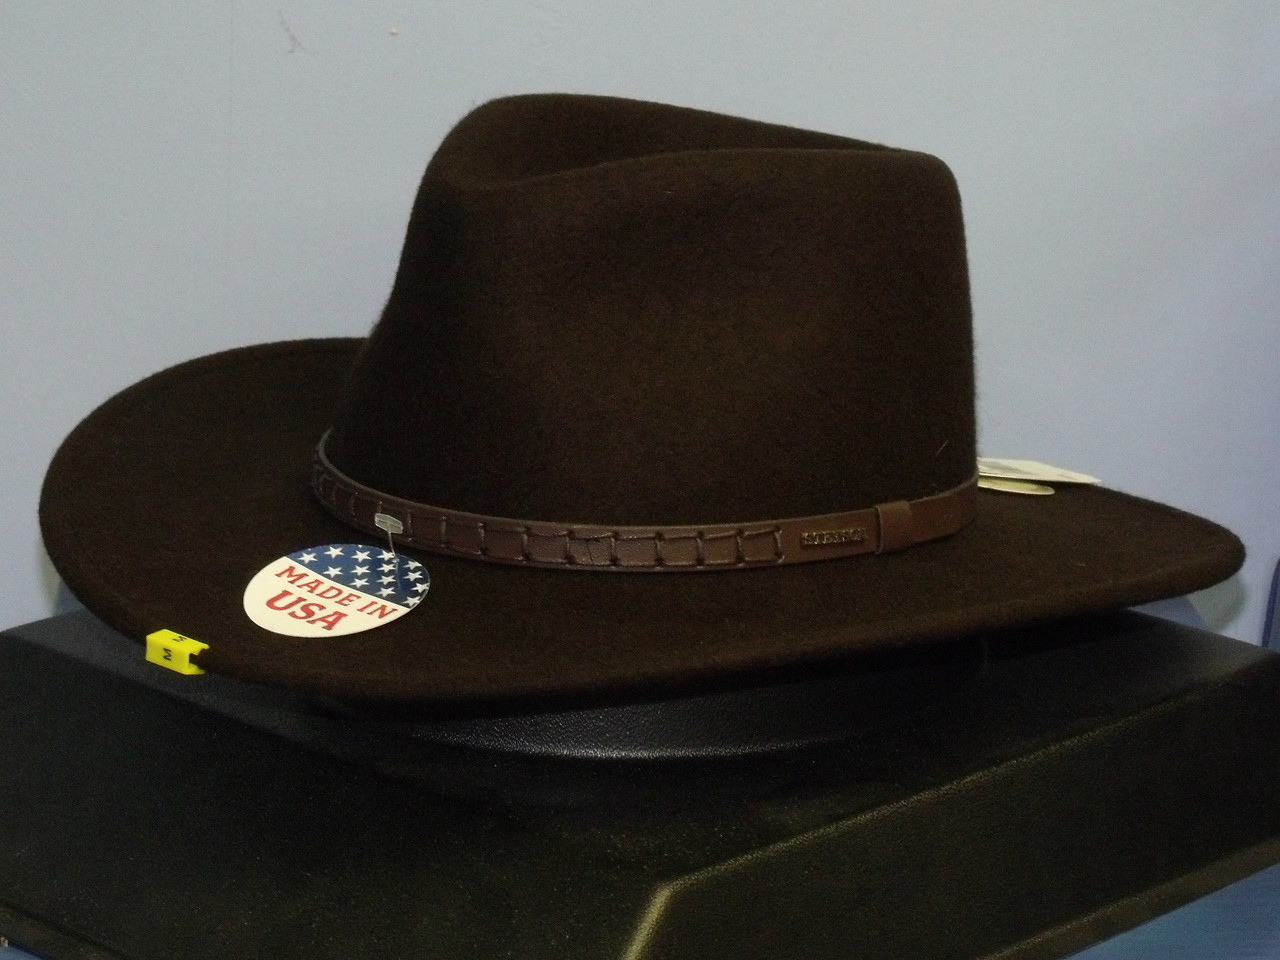 fb5064519a6 Stetson sturgis crushable wool western hat one mini ranch JPG 1280x960 Stetson  wildwood